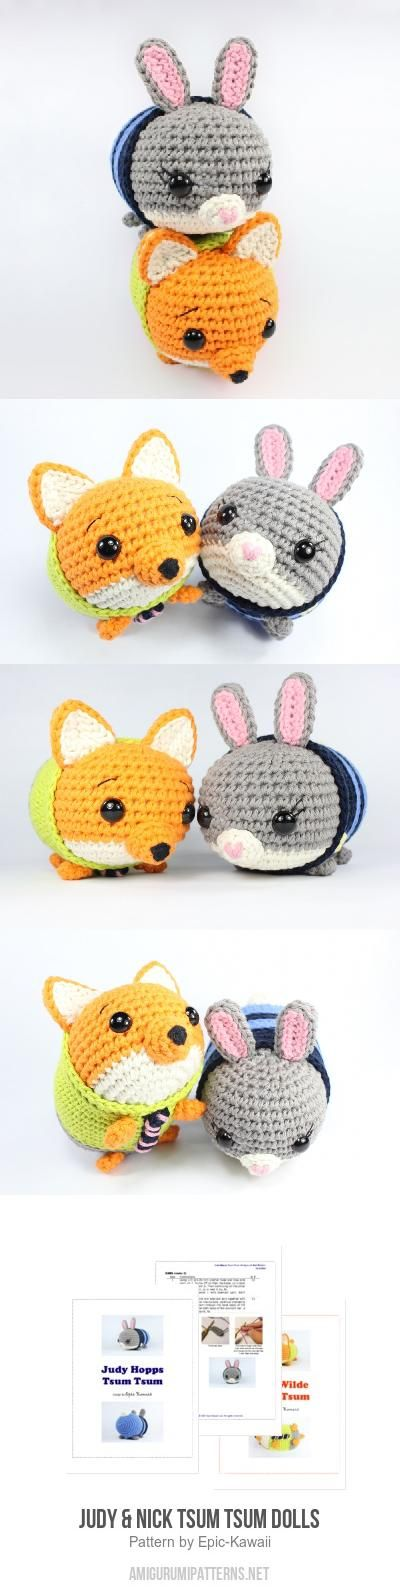 Judy & Nick Tsum Tsum Dolls amigurumi pattern by Epic Kawaii ...